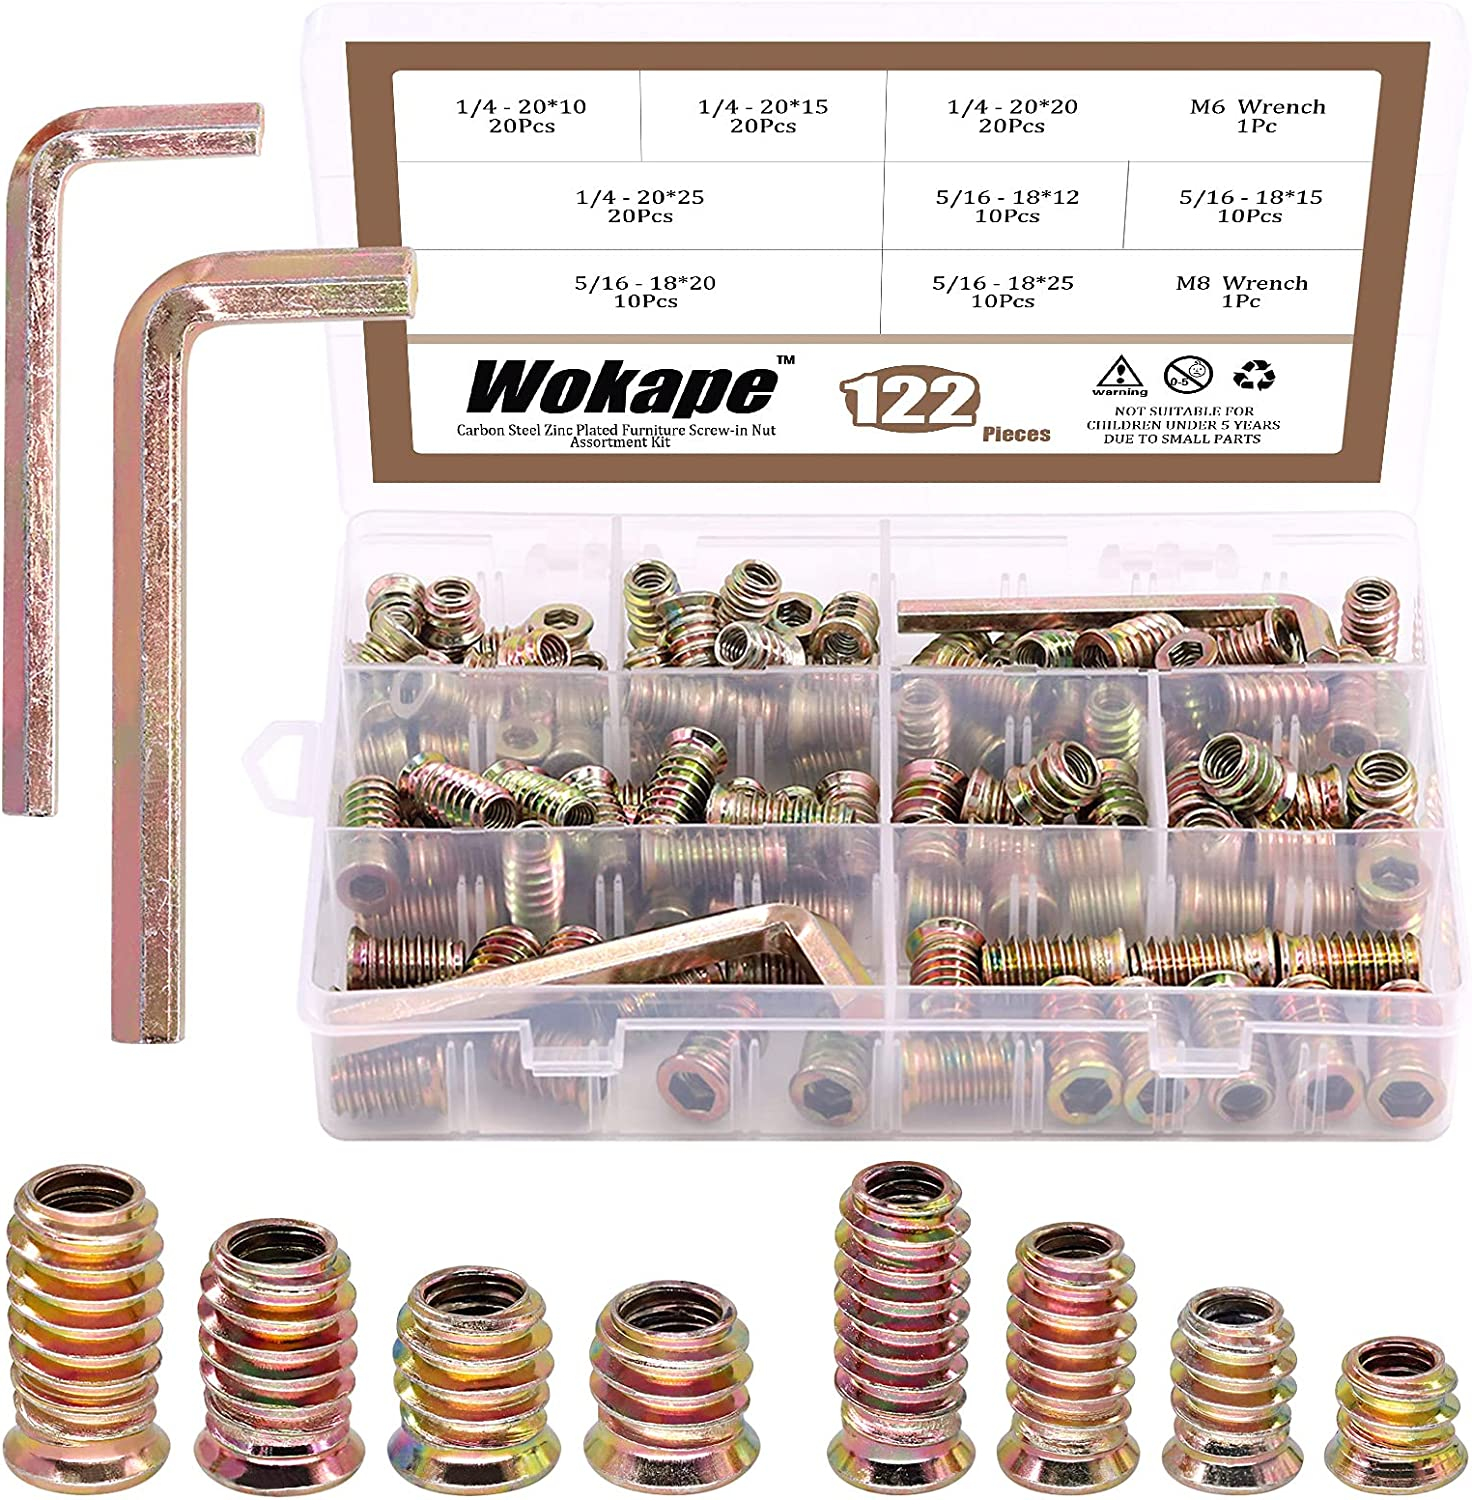 Wokape 122 Pieces Carbon Steel Threaded Inserts Nuts Assortment Kit, Zinc Plated Carbon Furniture Screw in Nut Threaded Wood Inserts Bolt Fastener Connector Hex Socket